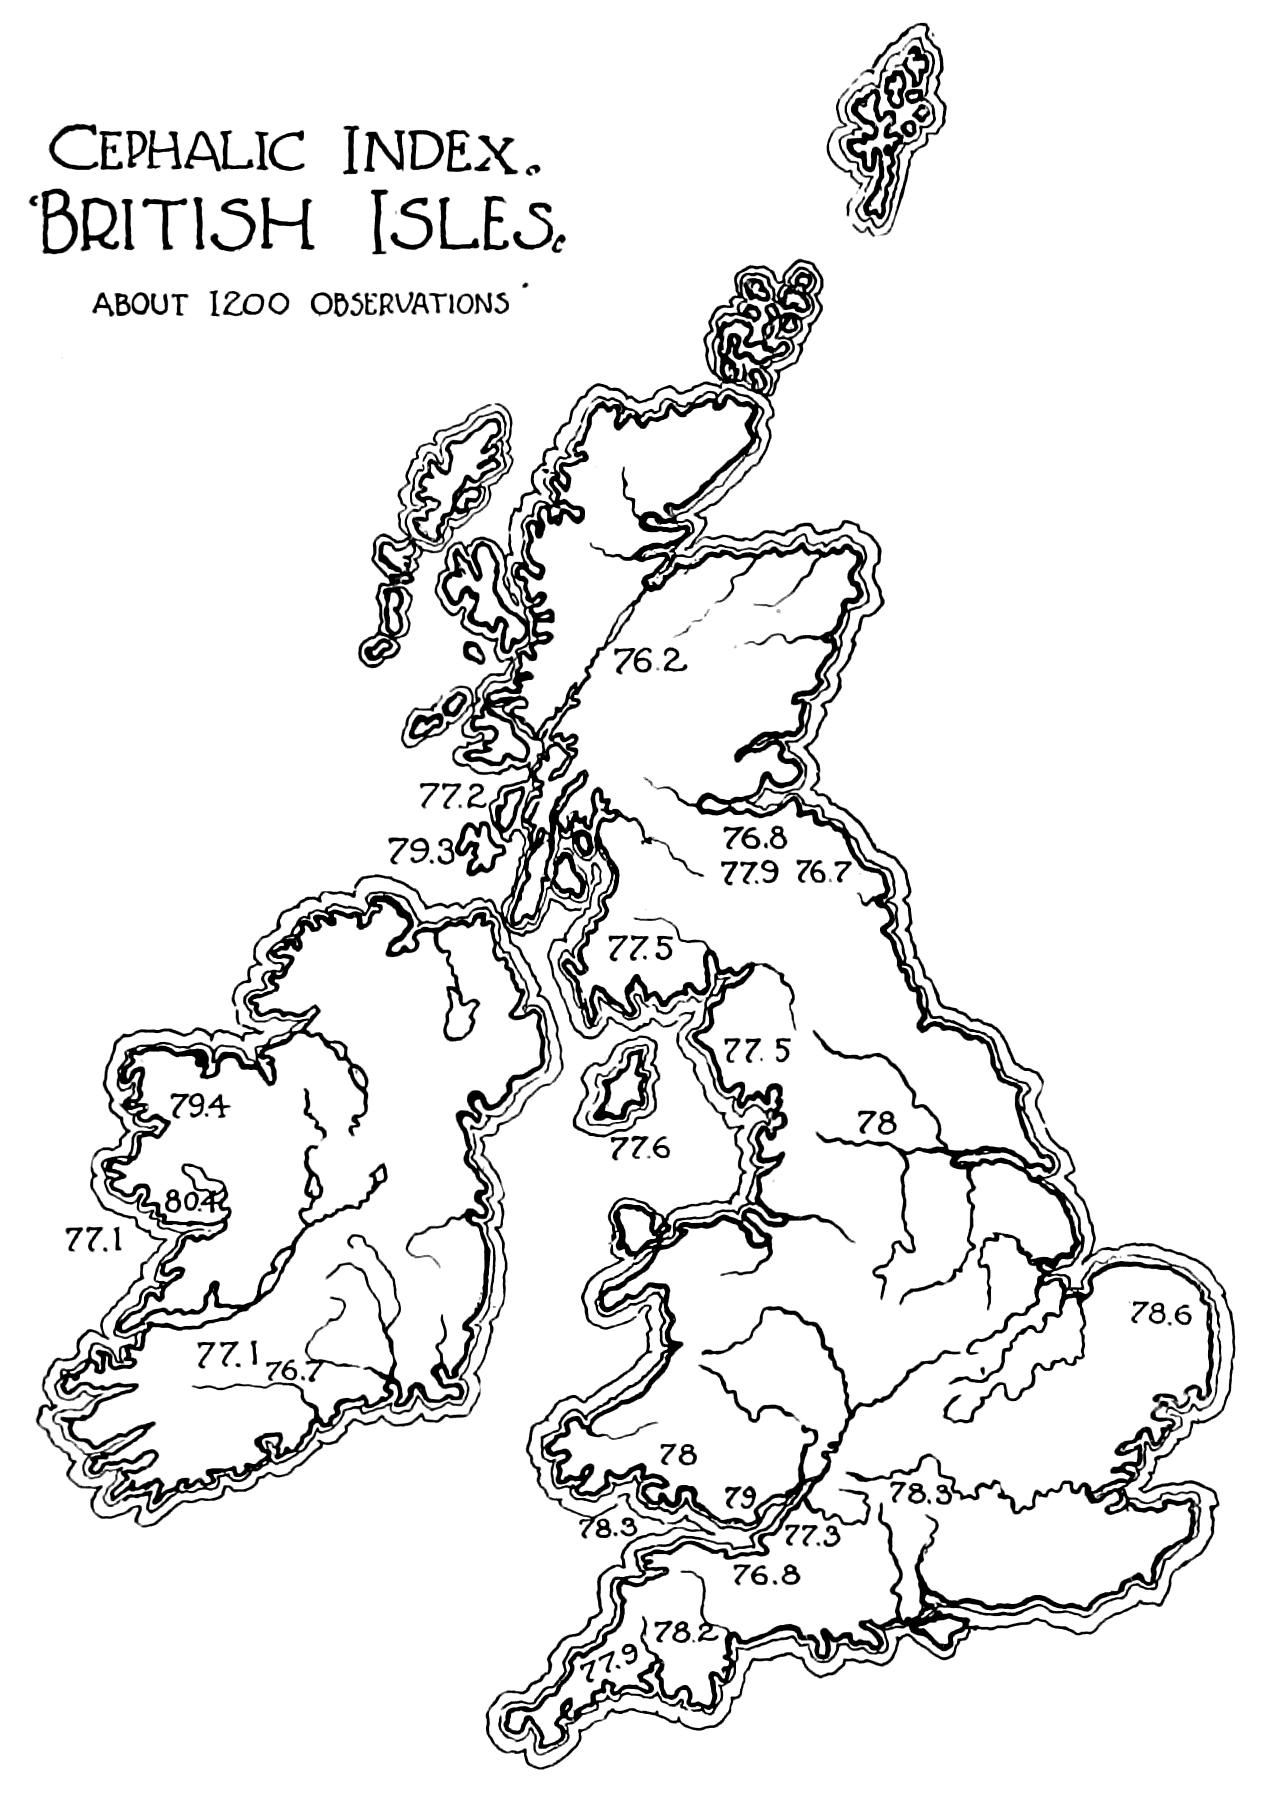 PSM V52 D162 Cephalic index of the british isles.png